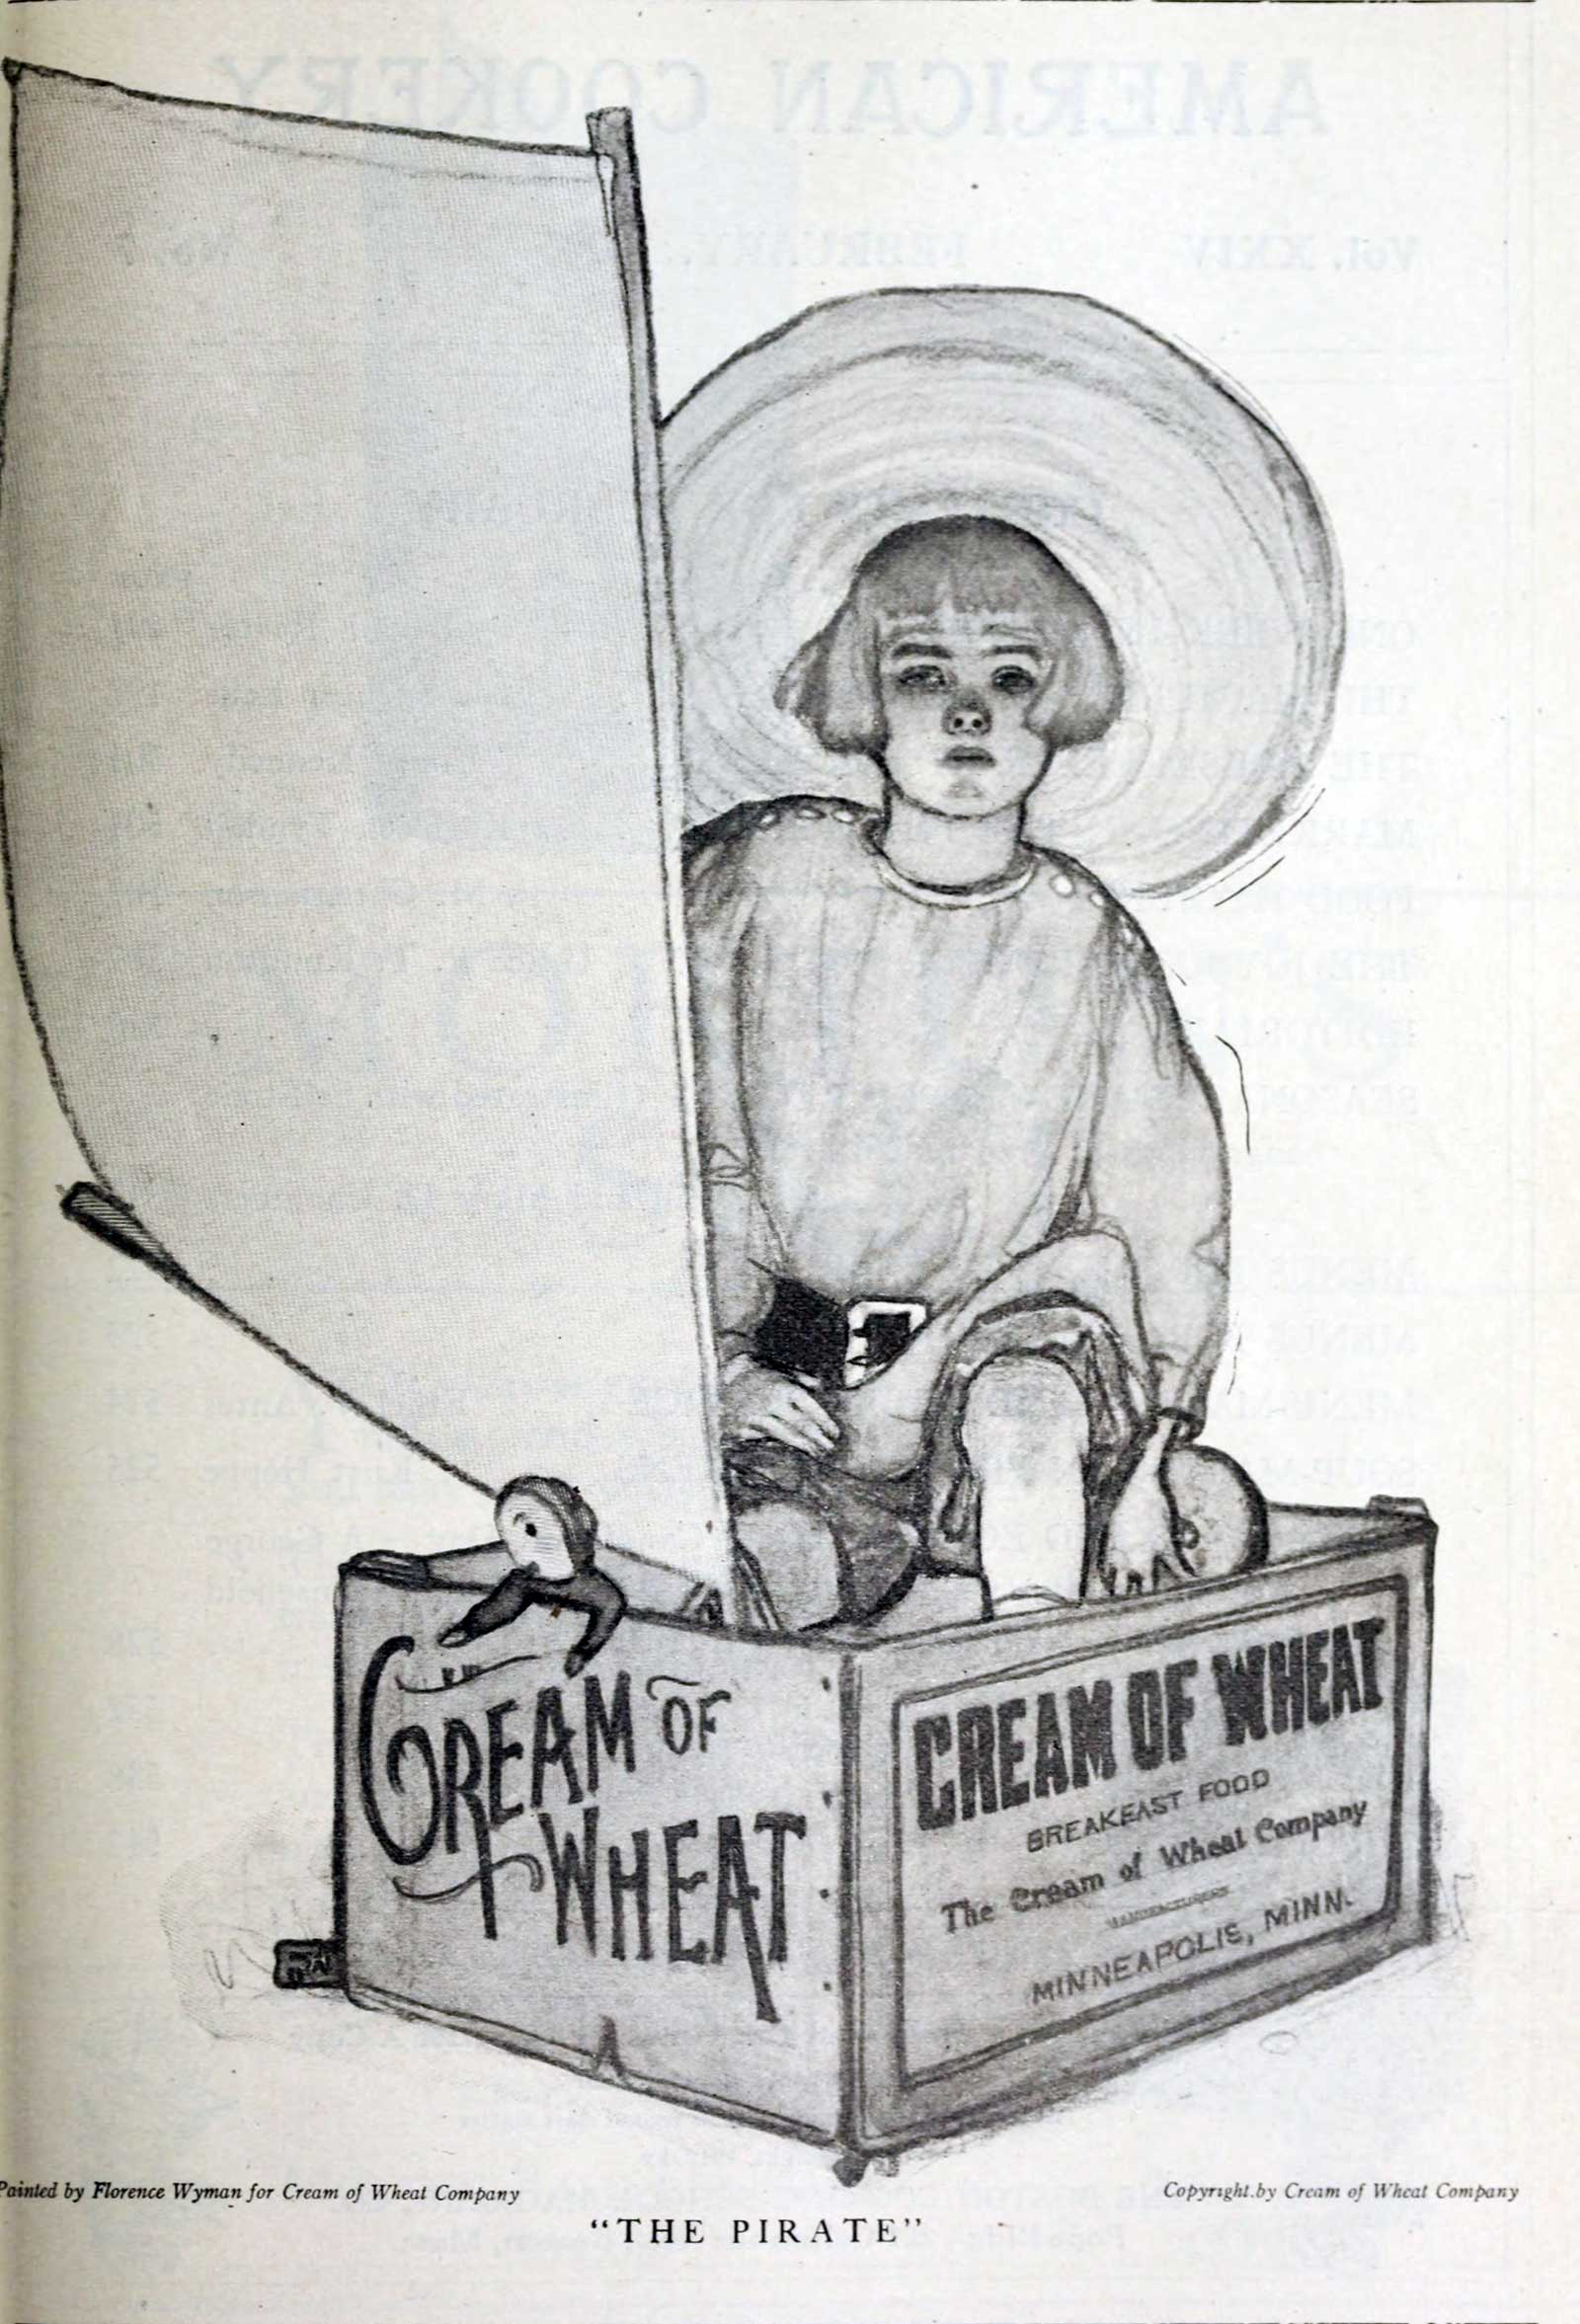 Cream of wheat, boy playing in a shipping crate